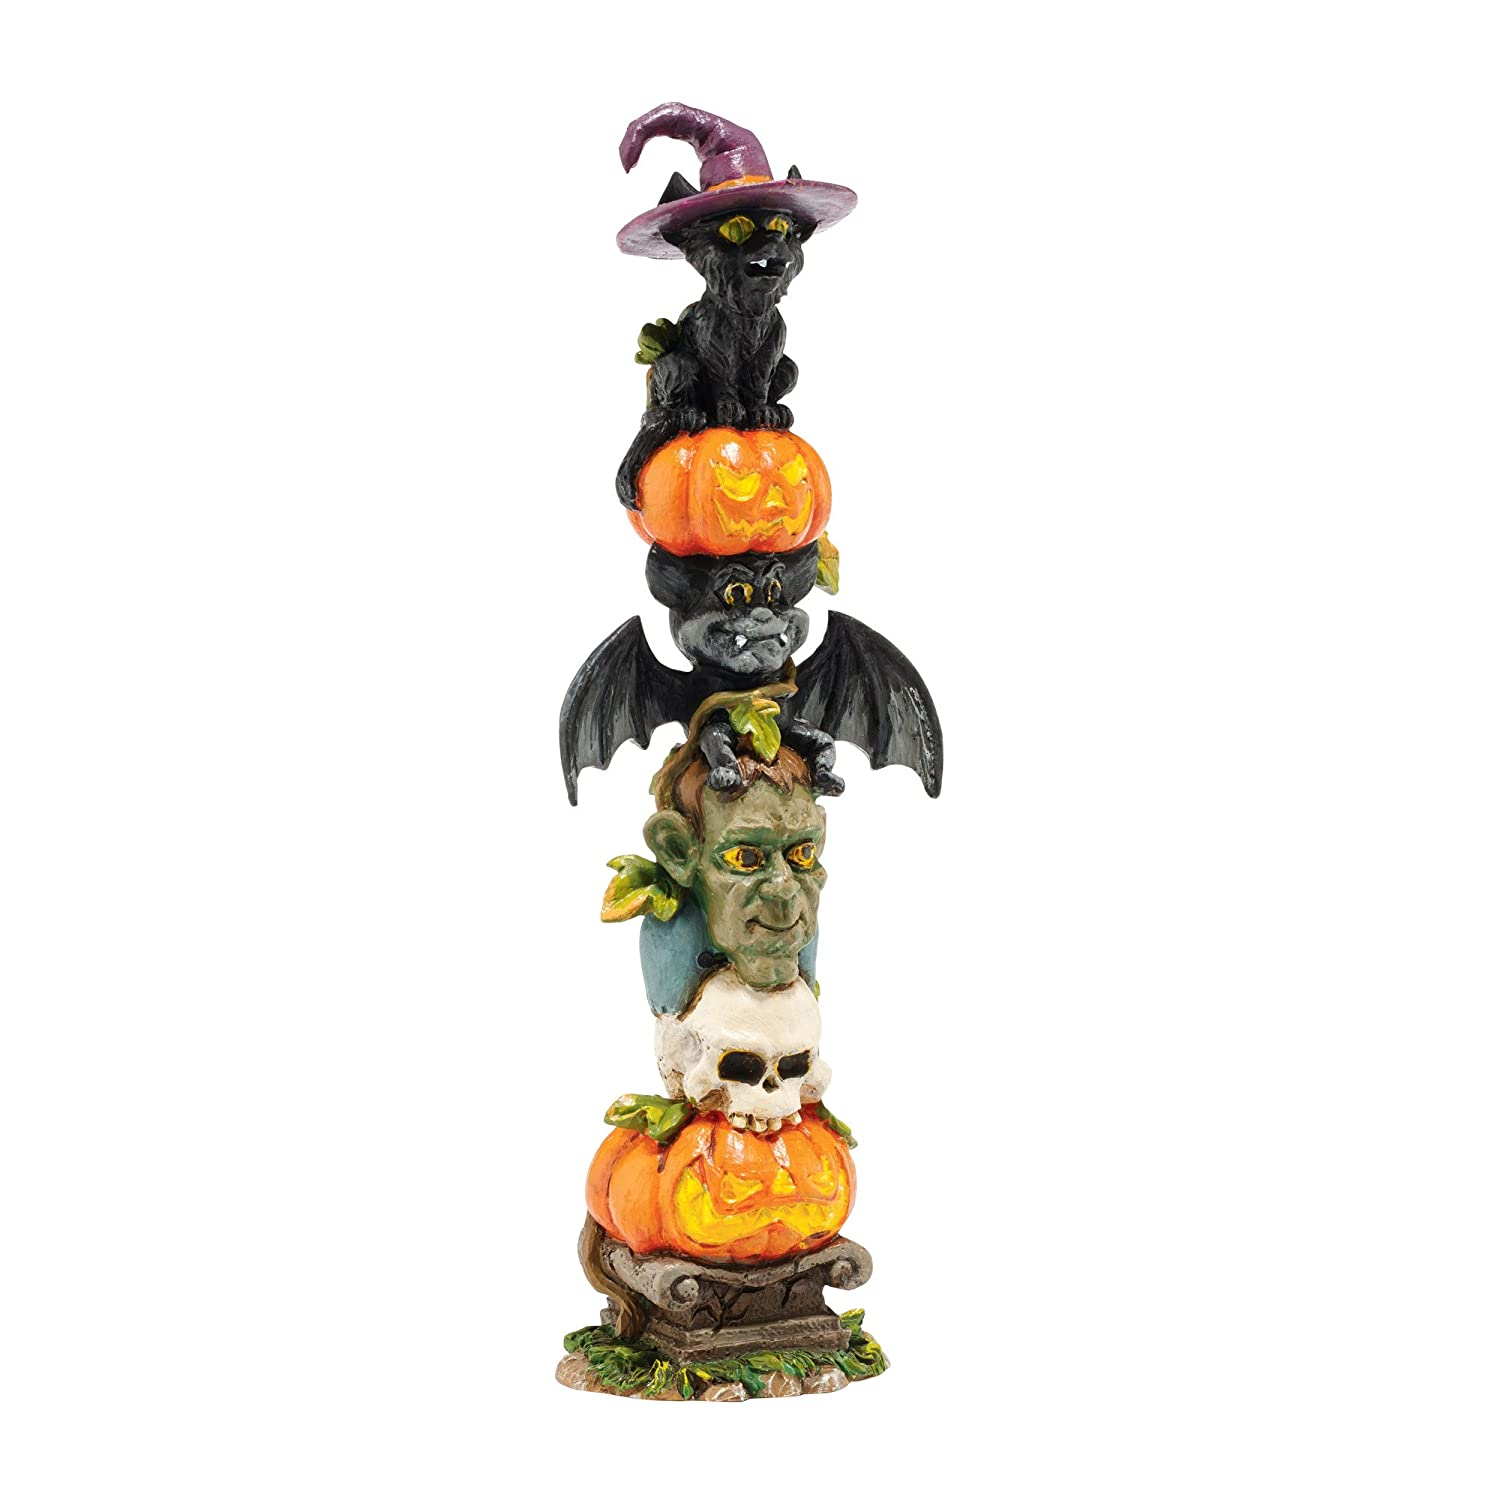 Department 56 Halloween Village Haunted Totem Pole Accessory, 6.75 inch 4047597